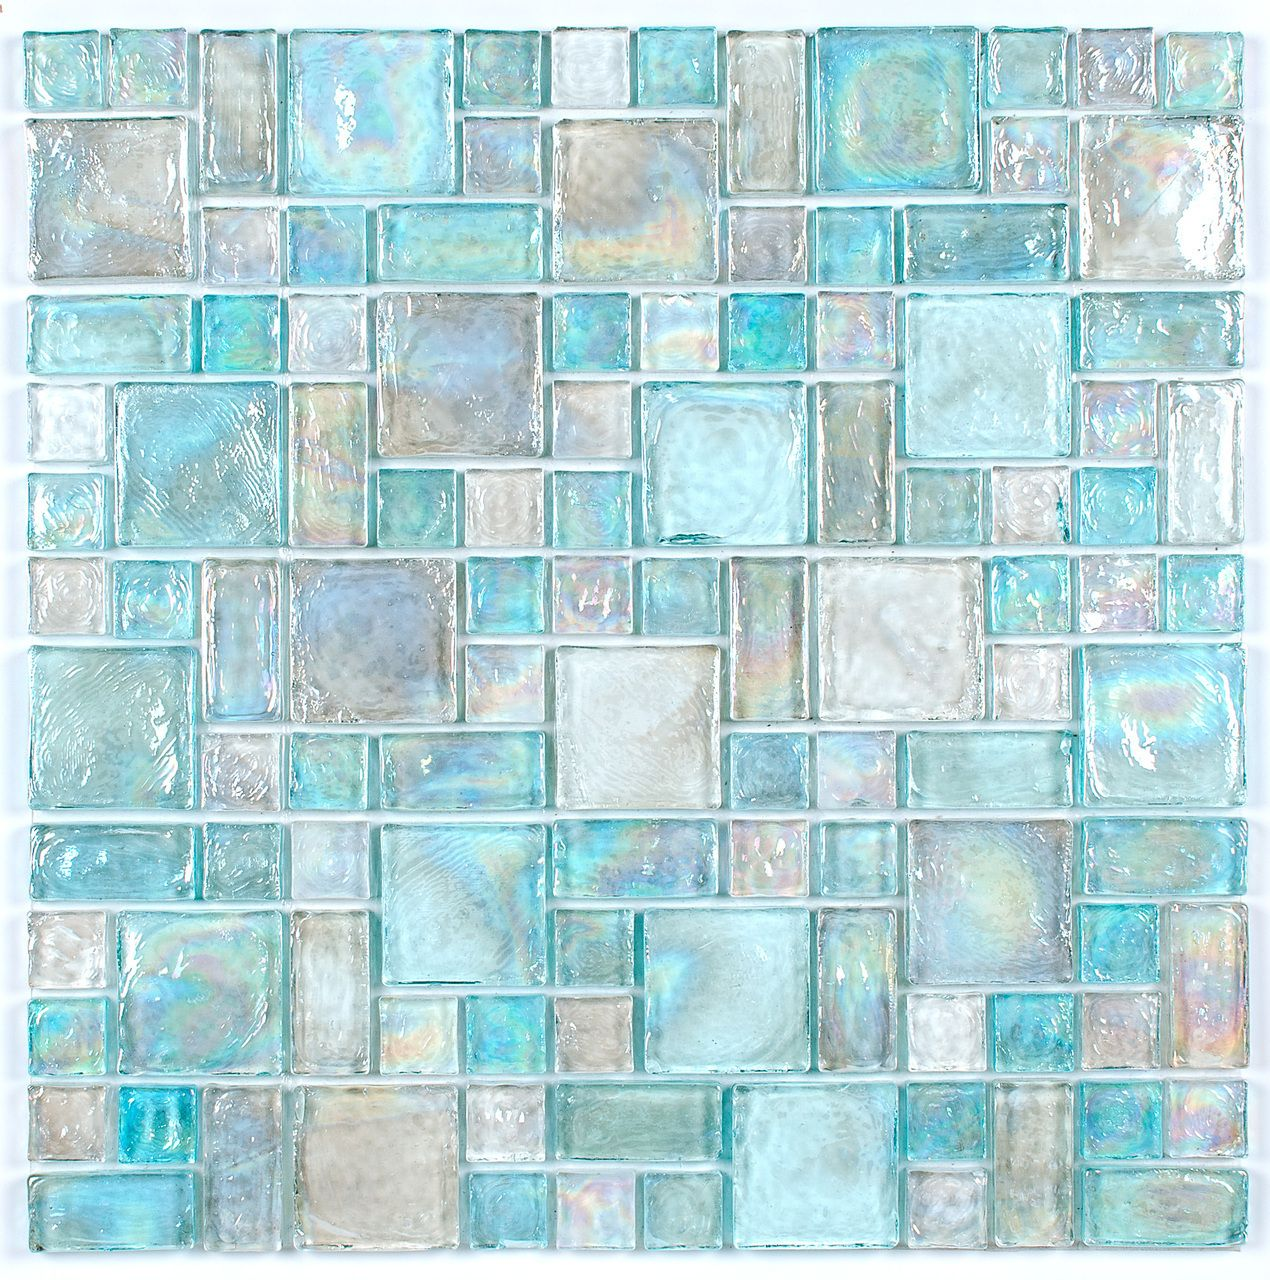 Pin by Jodi Symington on Home Designs | Pinterest | Glass mosaic ...